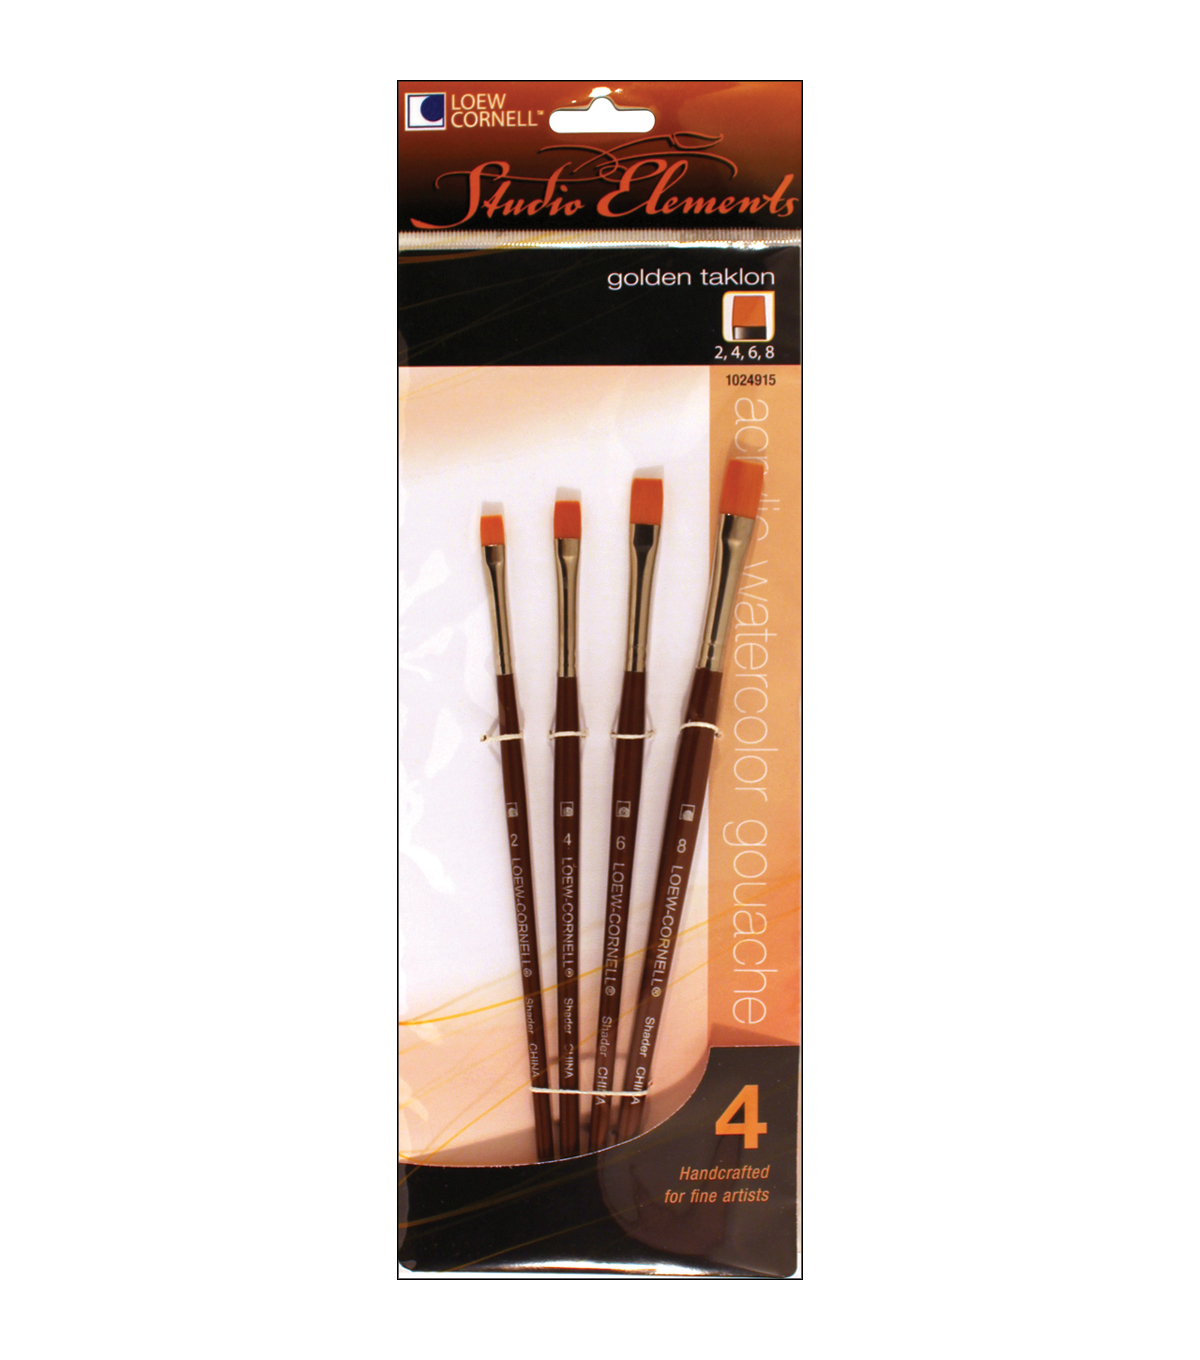 Loew-Cornell Studio Elements 4 pk Golden Taklon Brushes